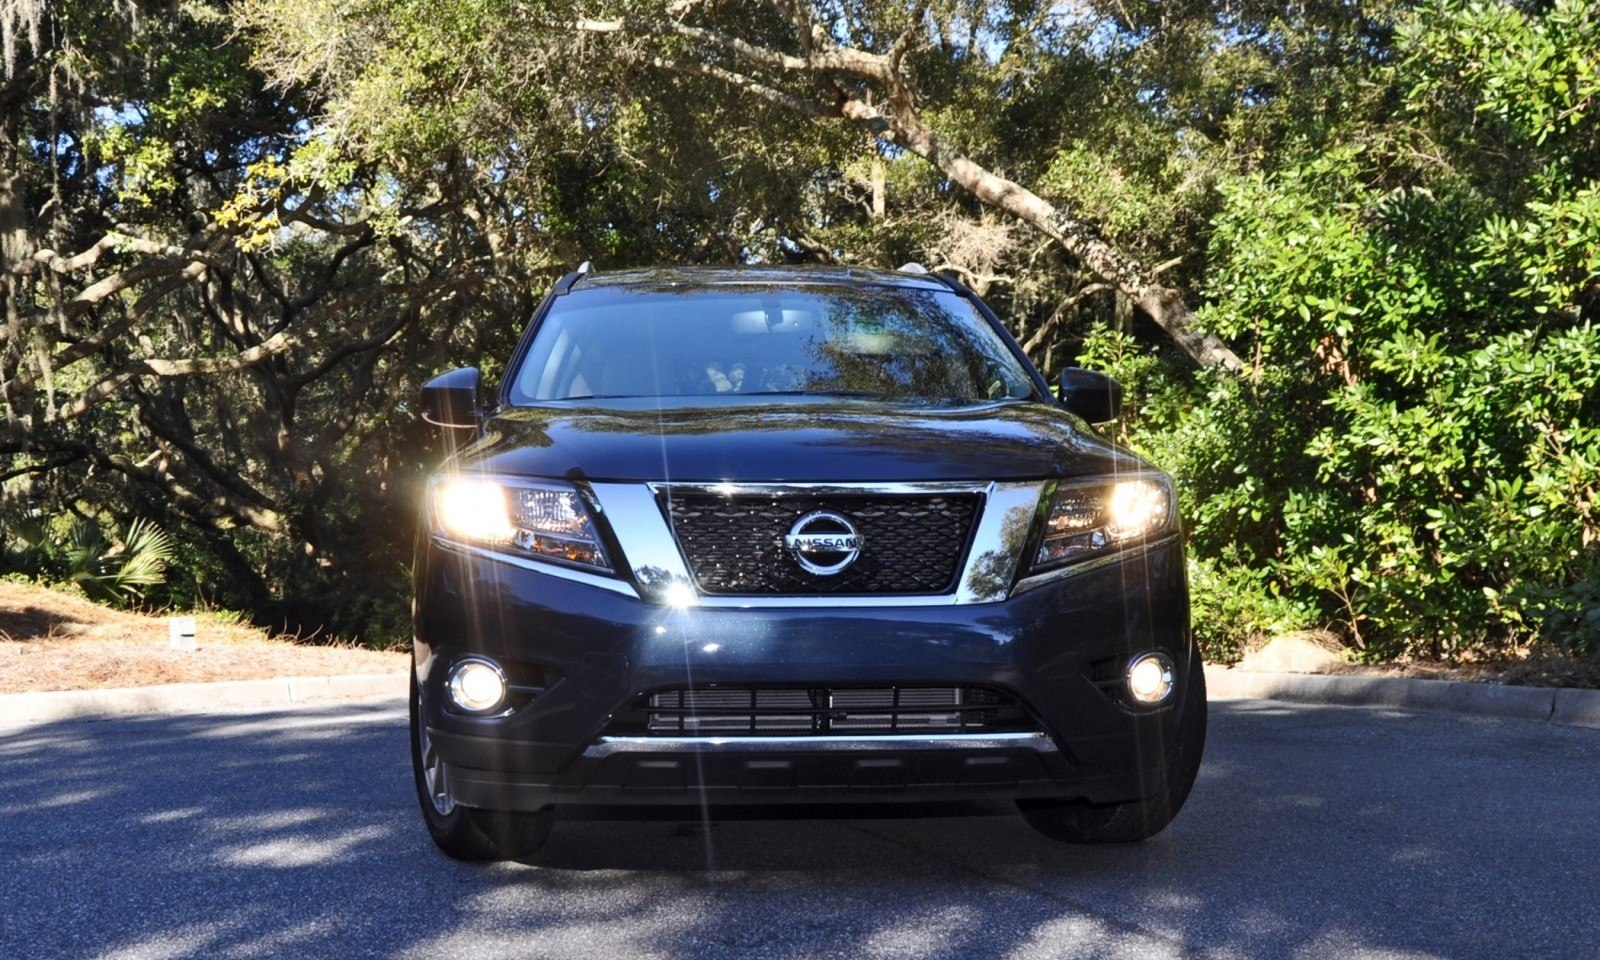 Road Test Review - 2015 Nissan Pathfinder SV 4WD 124